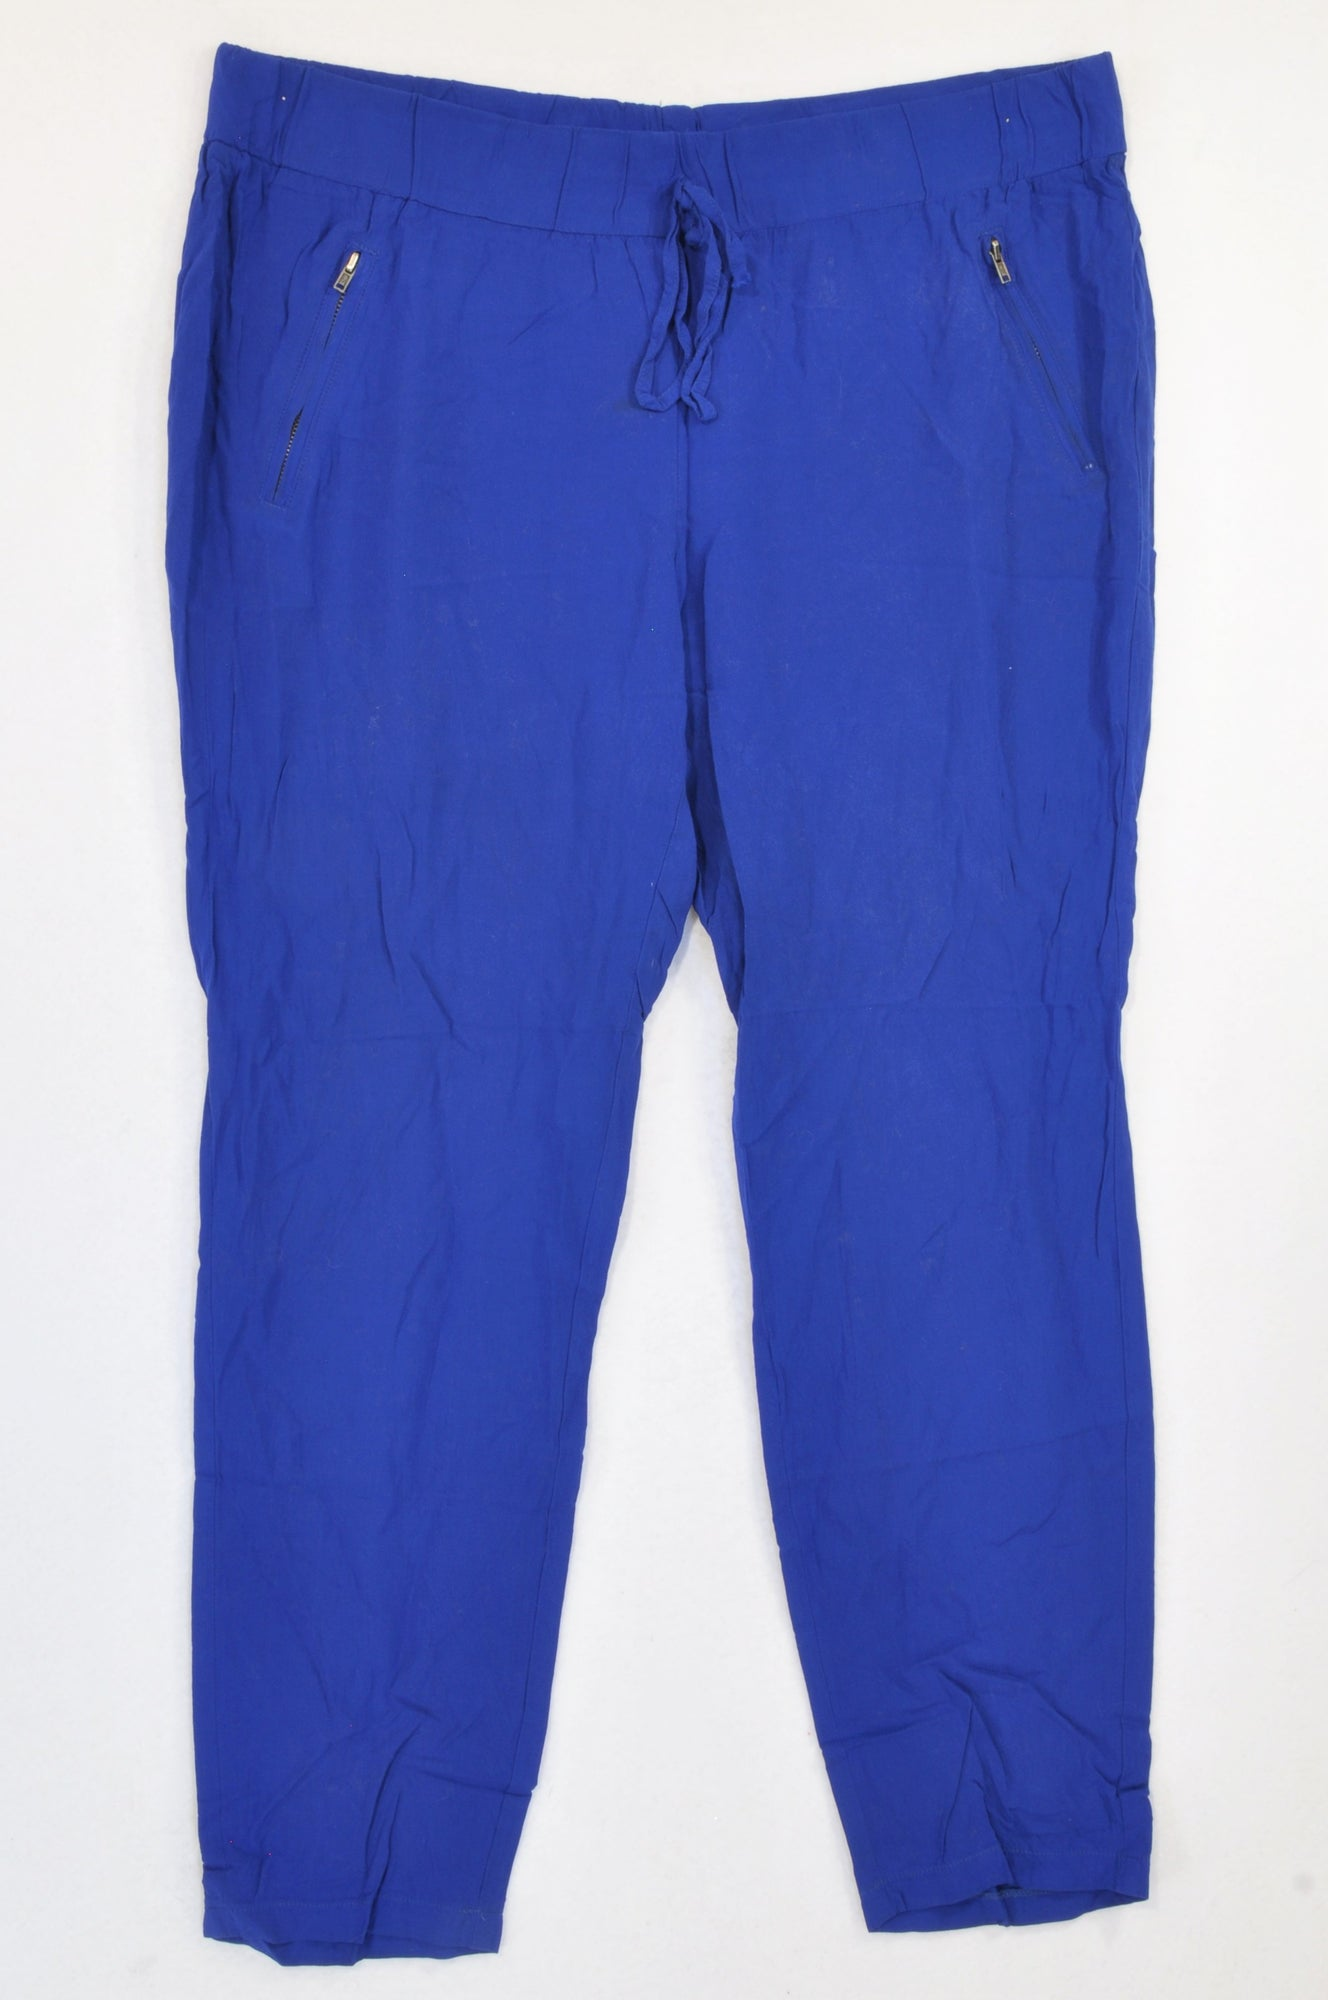 Unbranded Bright Blue Lightweight Pants Women Size 10